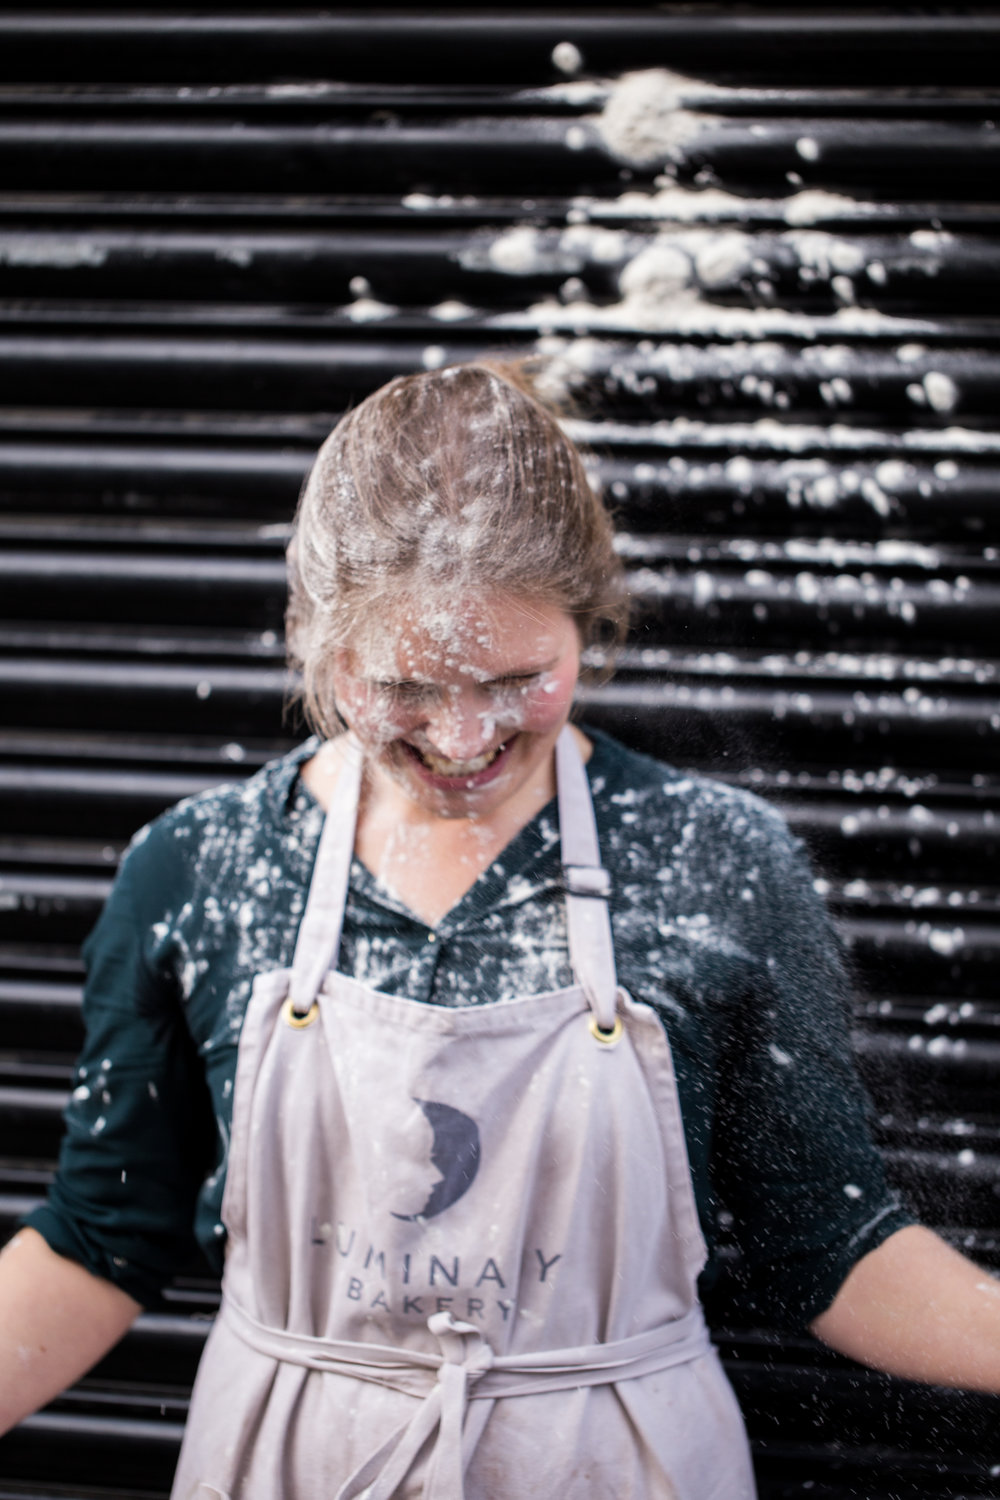 Henrietta - Henrietta Inman is a pastry chef, author, cookery teacher, gardener and edible flower grower, celebrating baking with natural, seasonal and local ingredients...